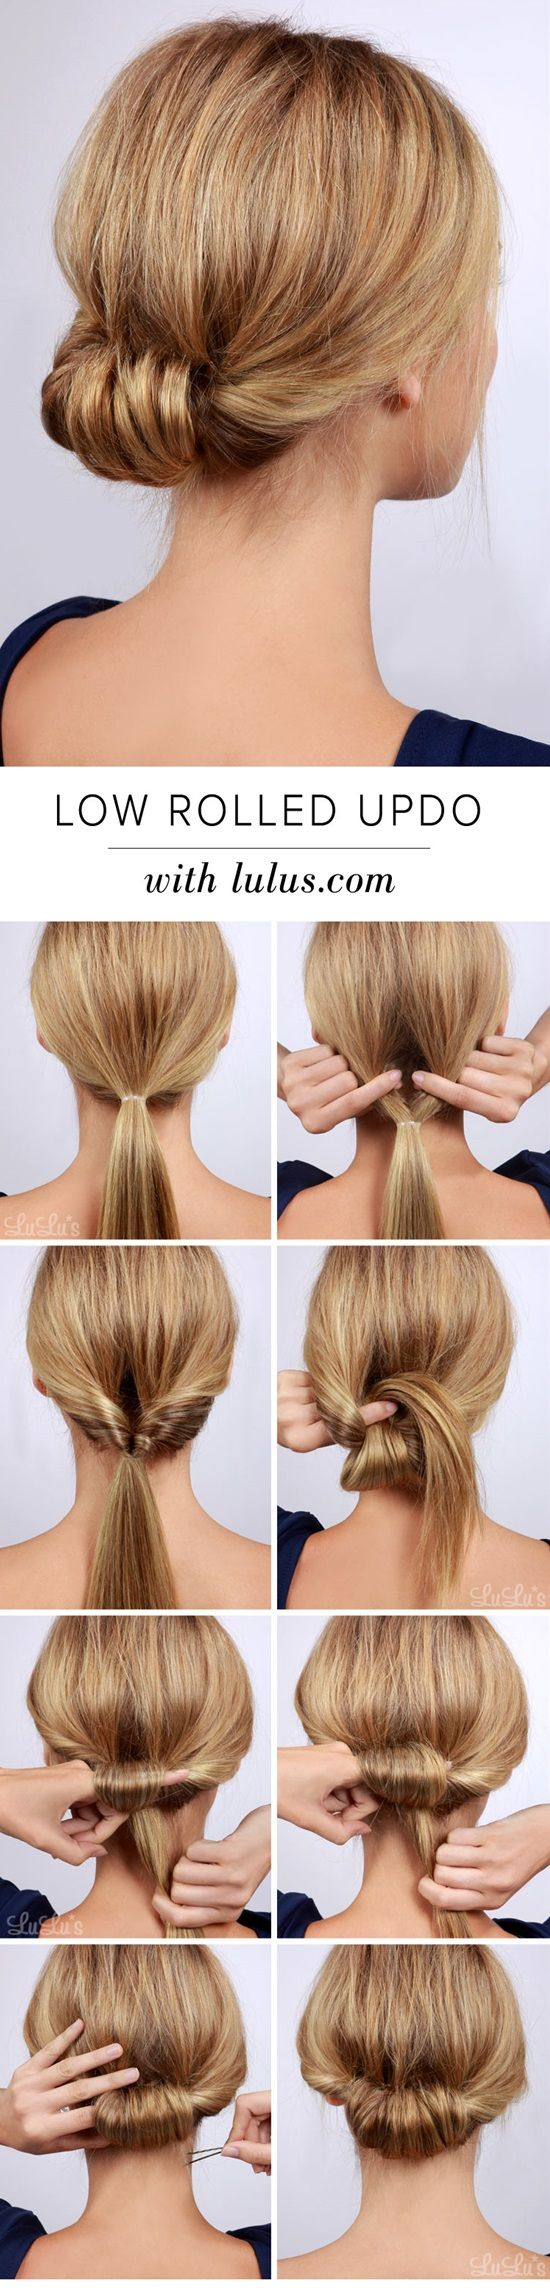 5 Minute Hairstyles For Girls 25 Best Ideas About Funeral Hair On Pinterest Calla Lily Flower